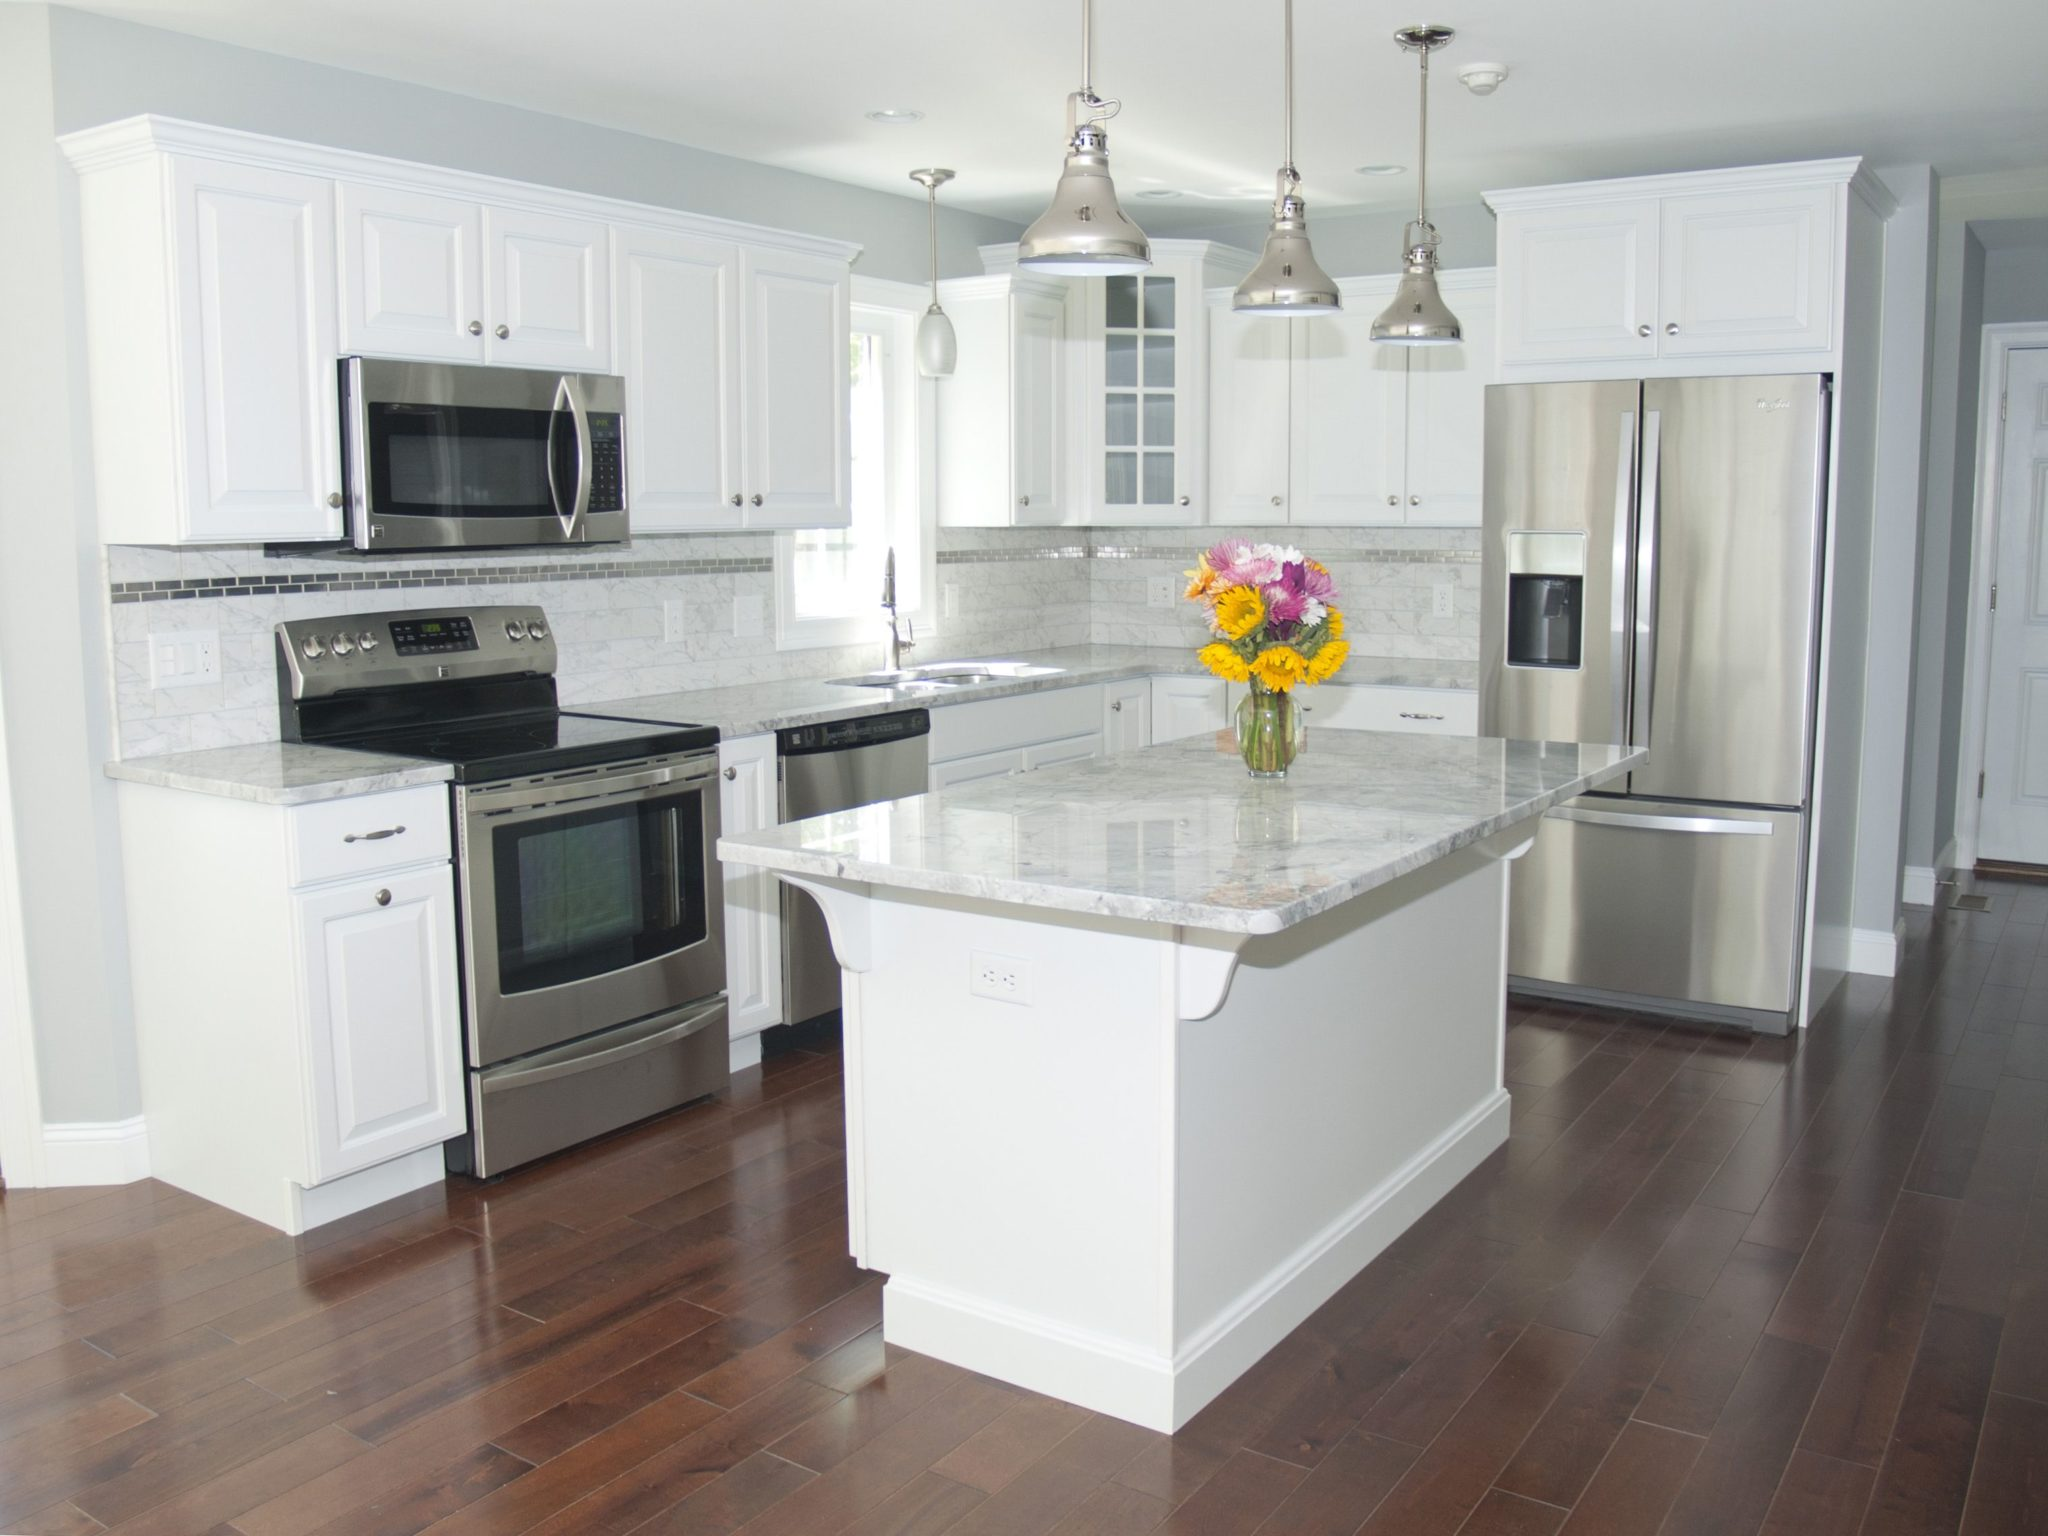 7 Reasons to Use Stainless Steel Appliances